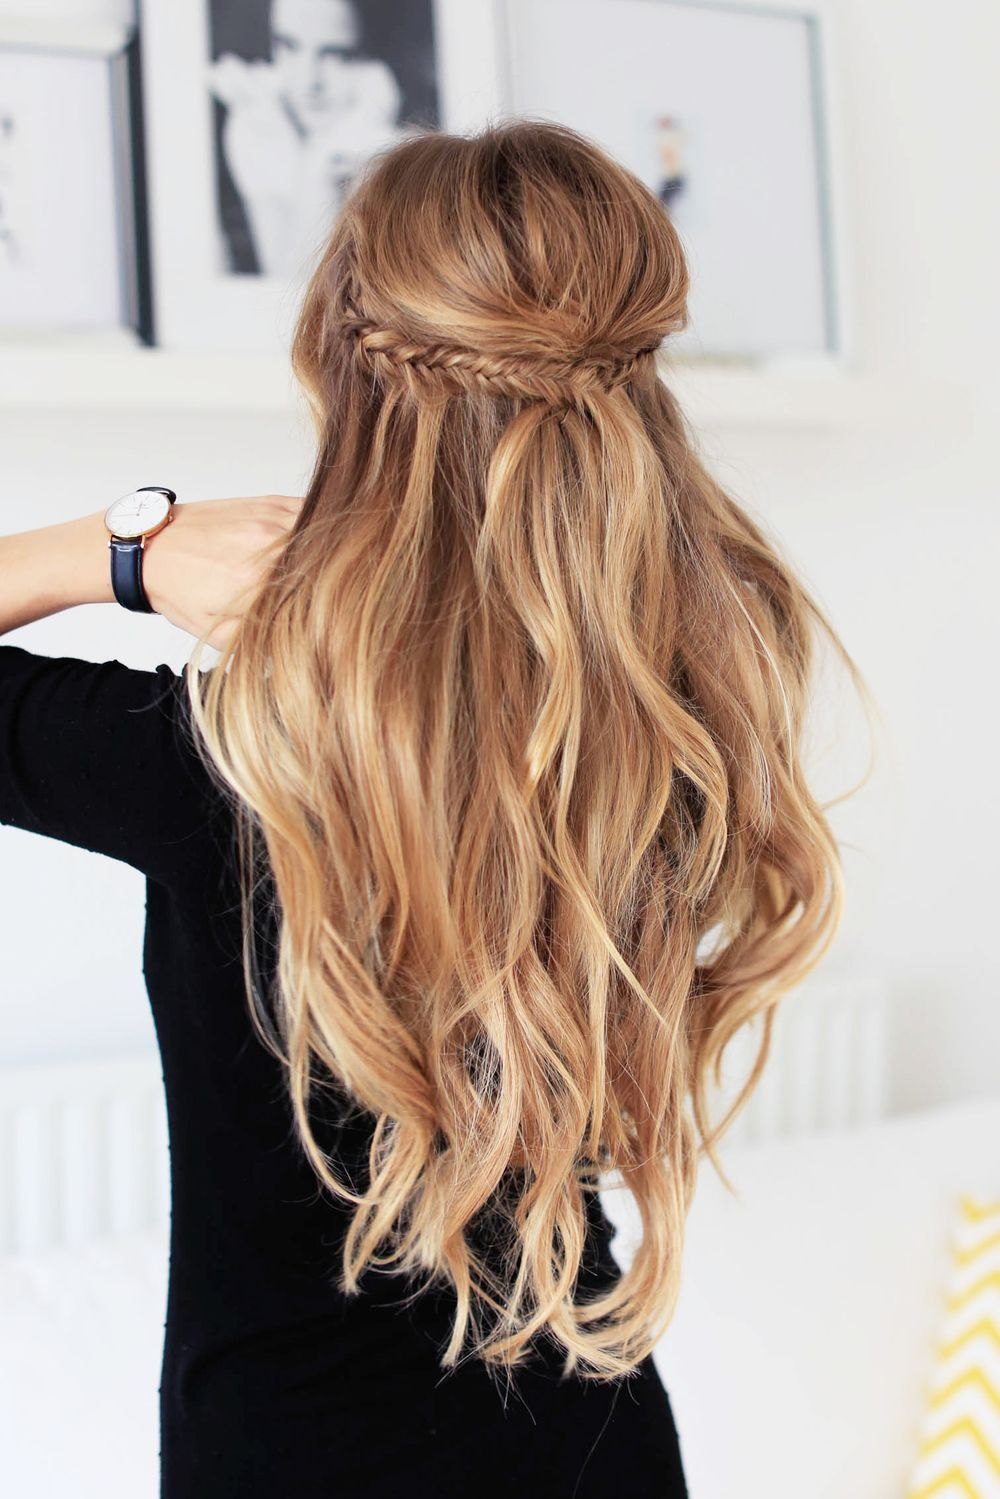 Die besten haarfrisuren dream hair pinterest hair style